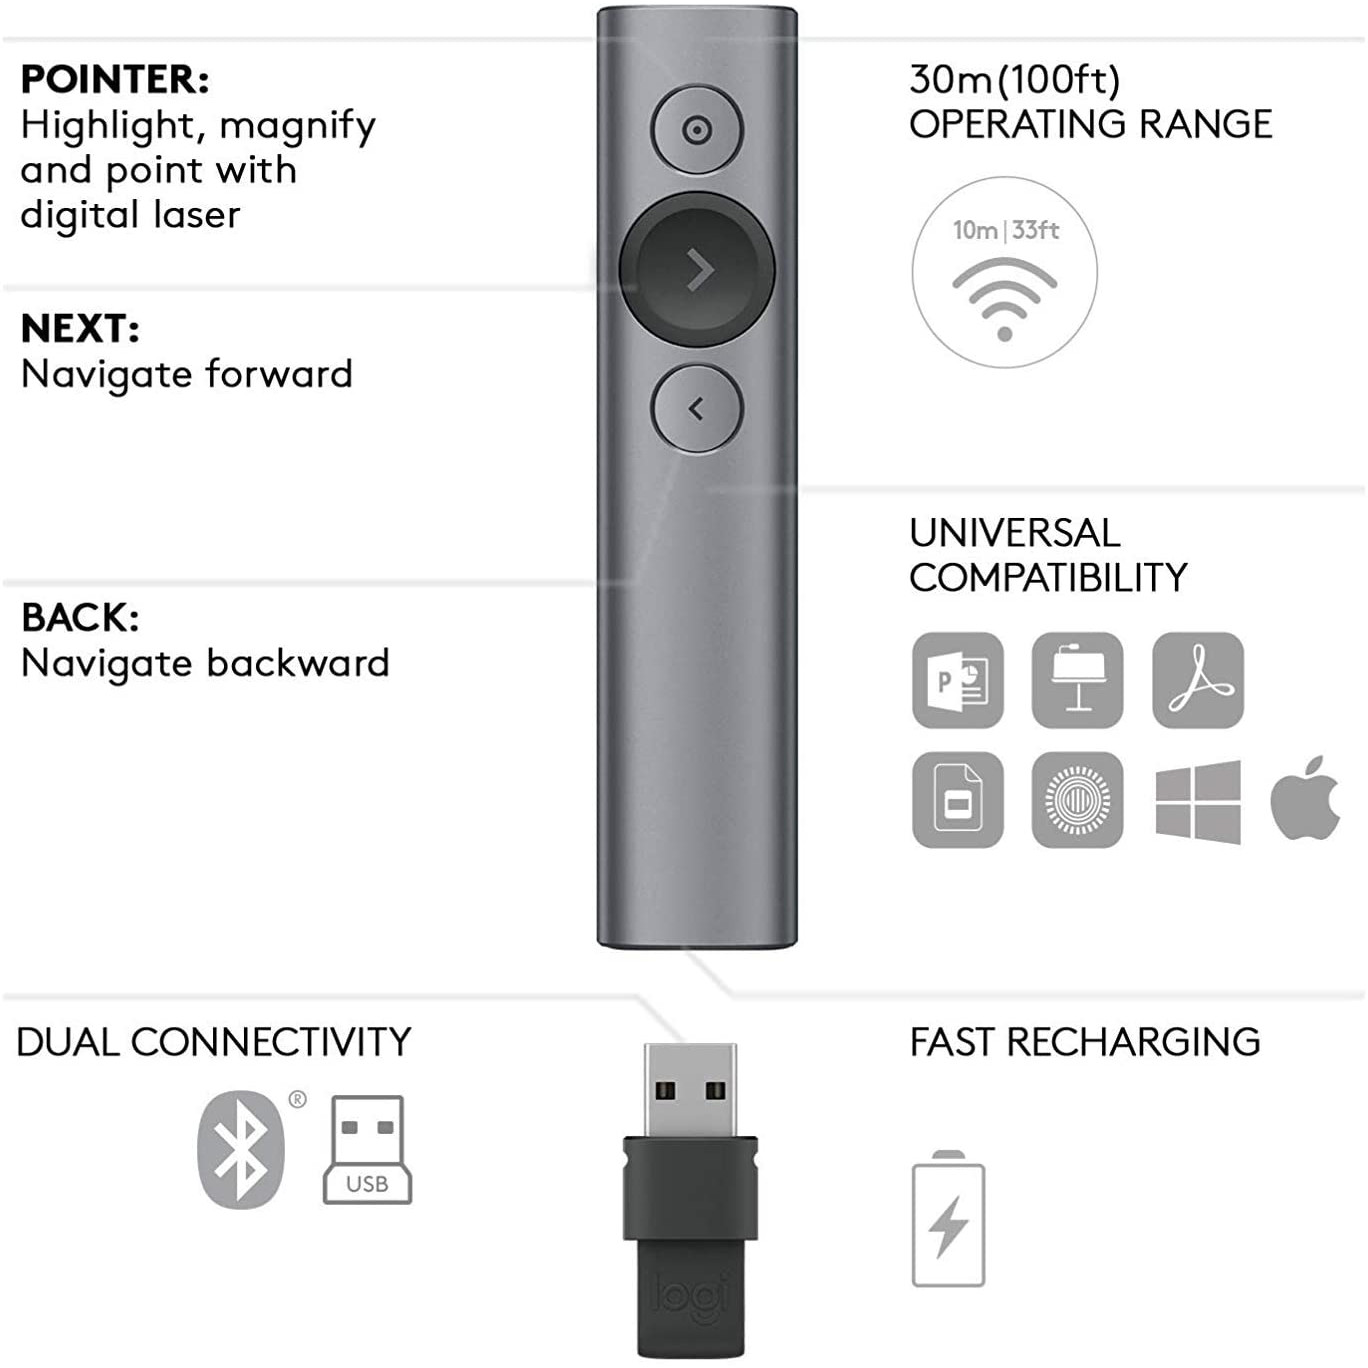 thumbnail 6 - Logitech-Spotlight-Wireless-Presentation-Remote-Universal-Compatibility-TS